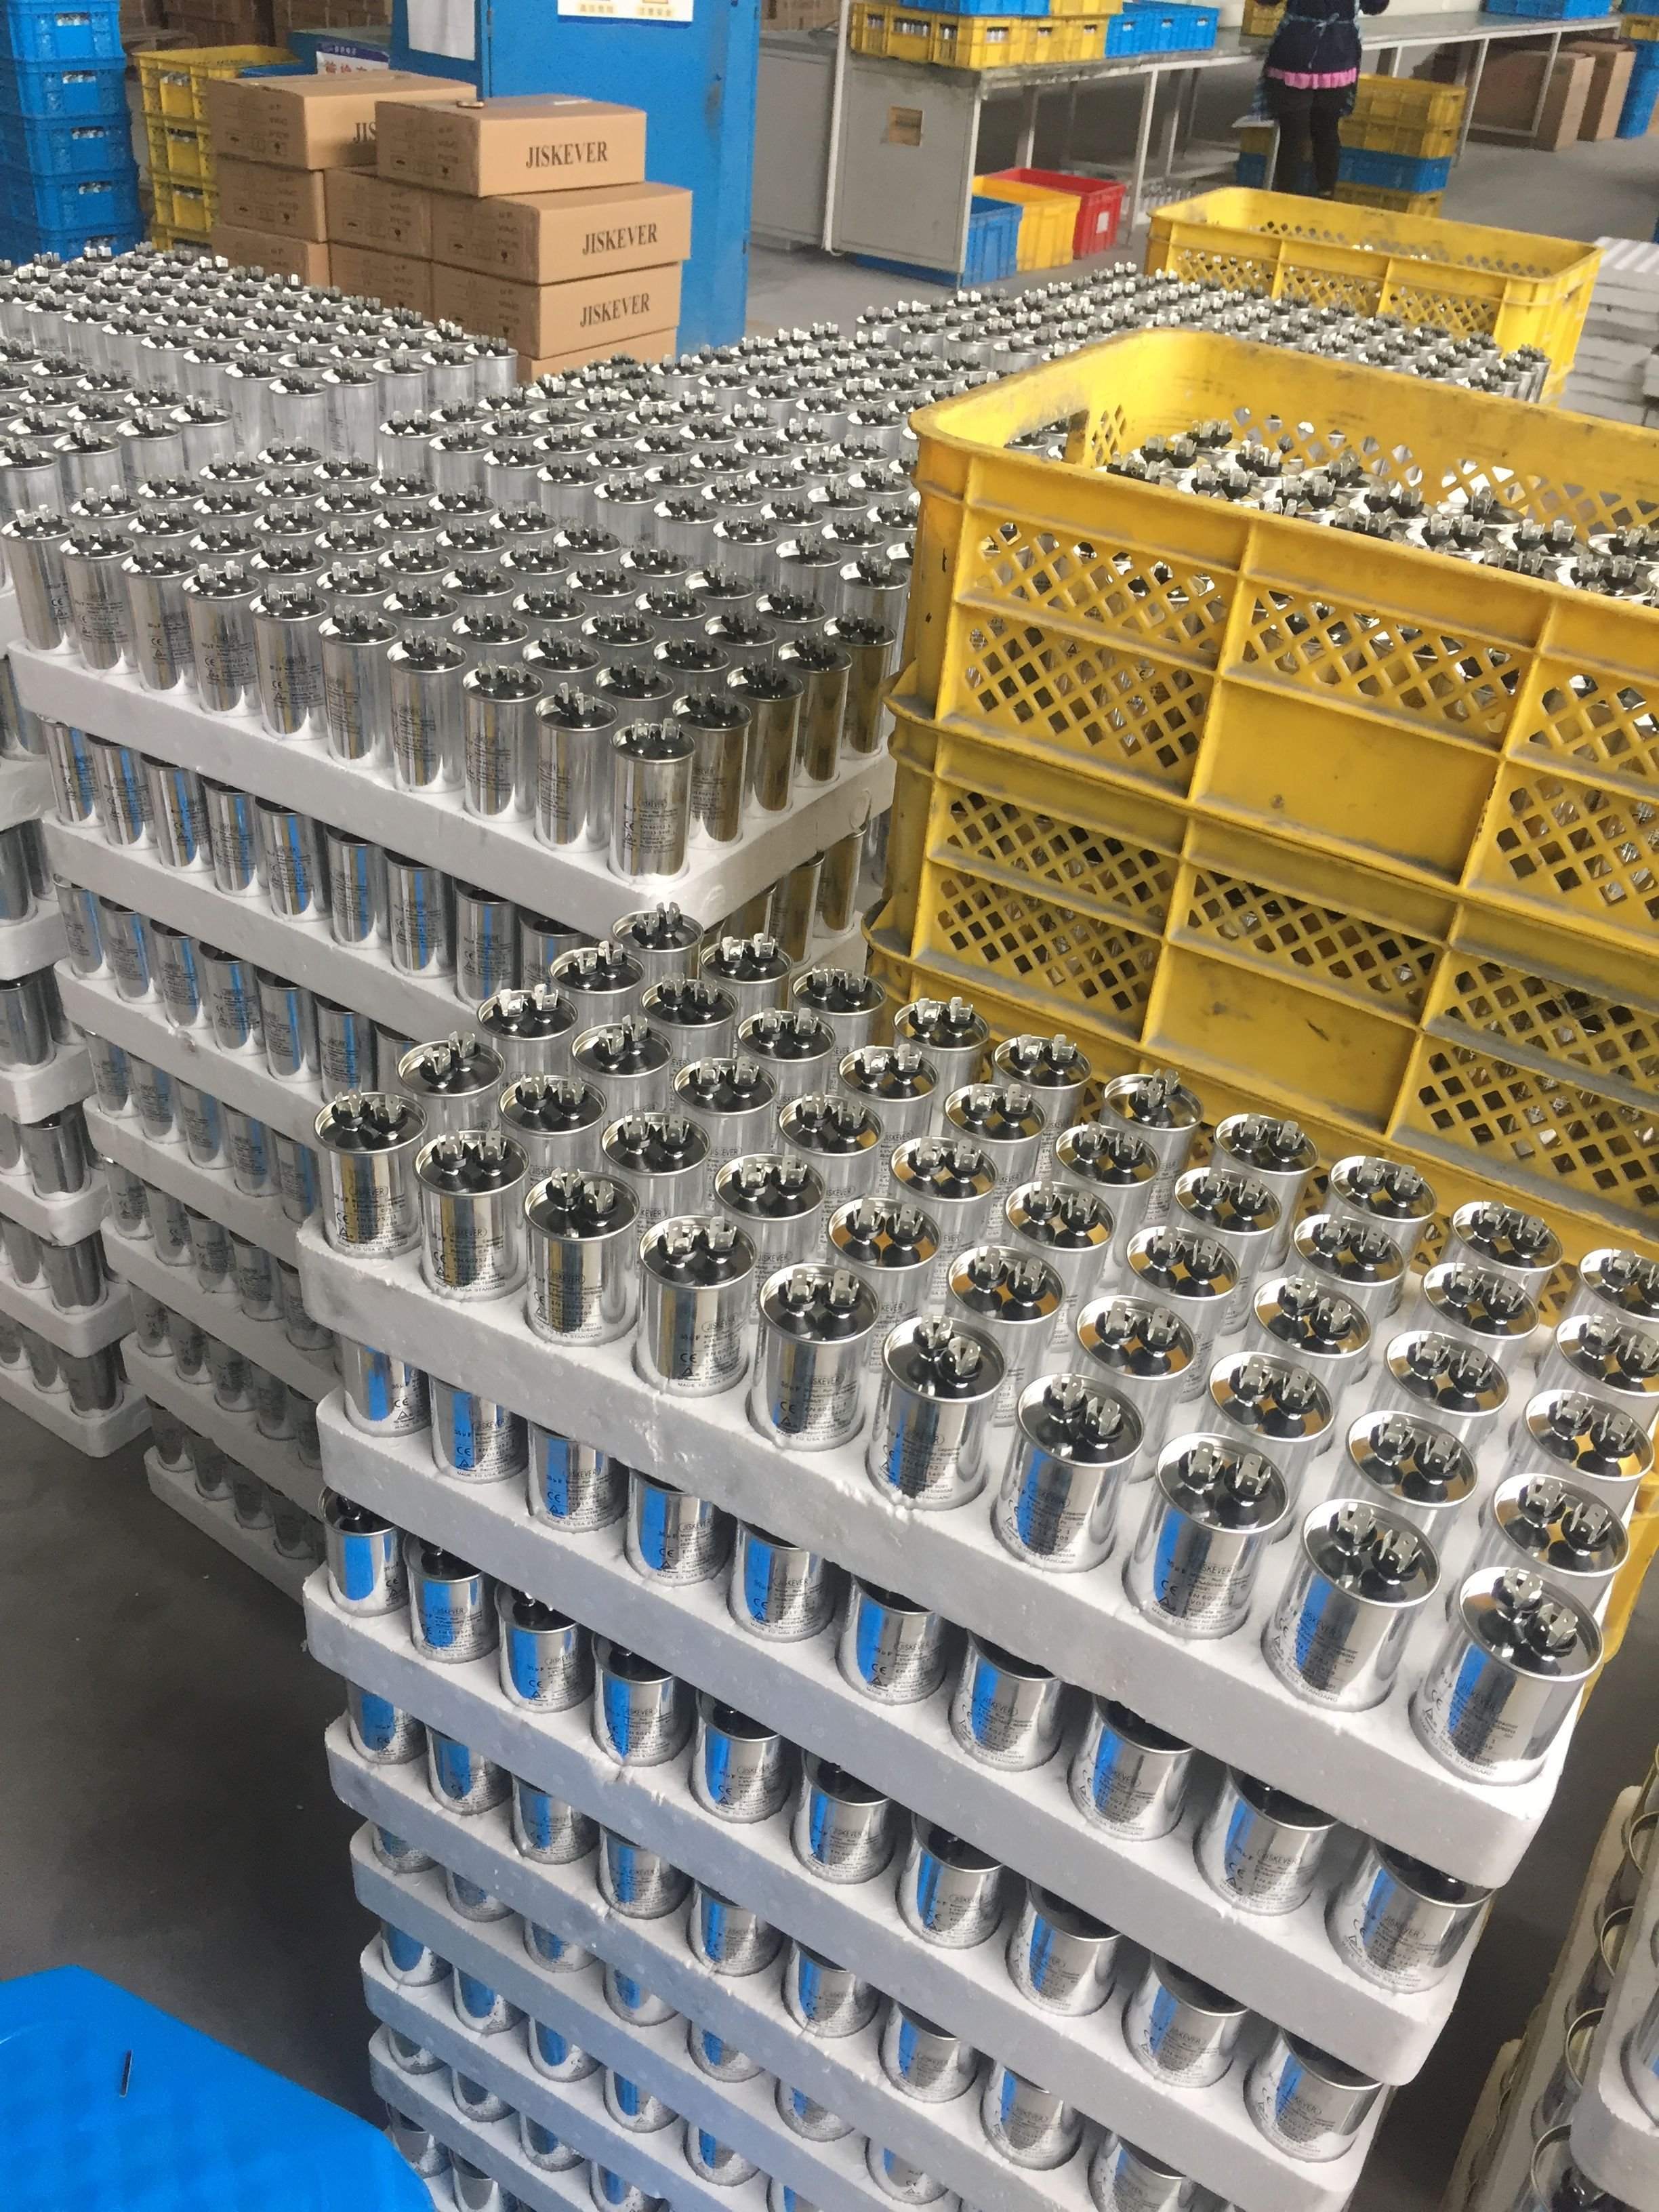 Cbb65 Capacitor 1 Tuv Ul Ce Approval 2 Good Self Healing Long Life Span 3 High Reliability And Stability Me Ac Capacitor Capacitor Self Healing